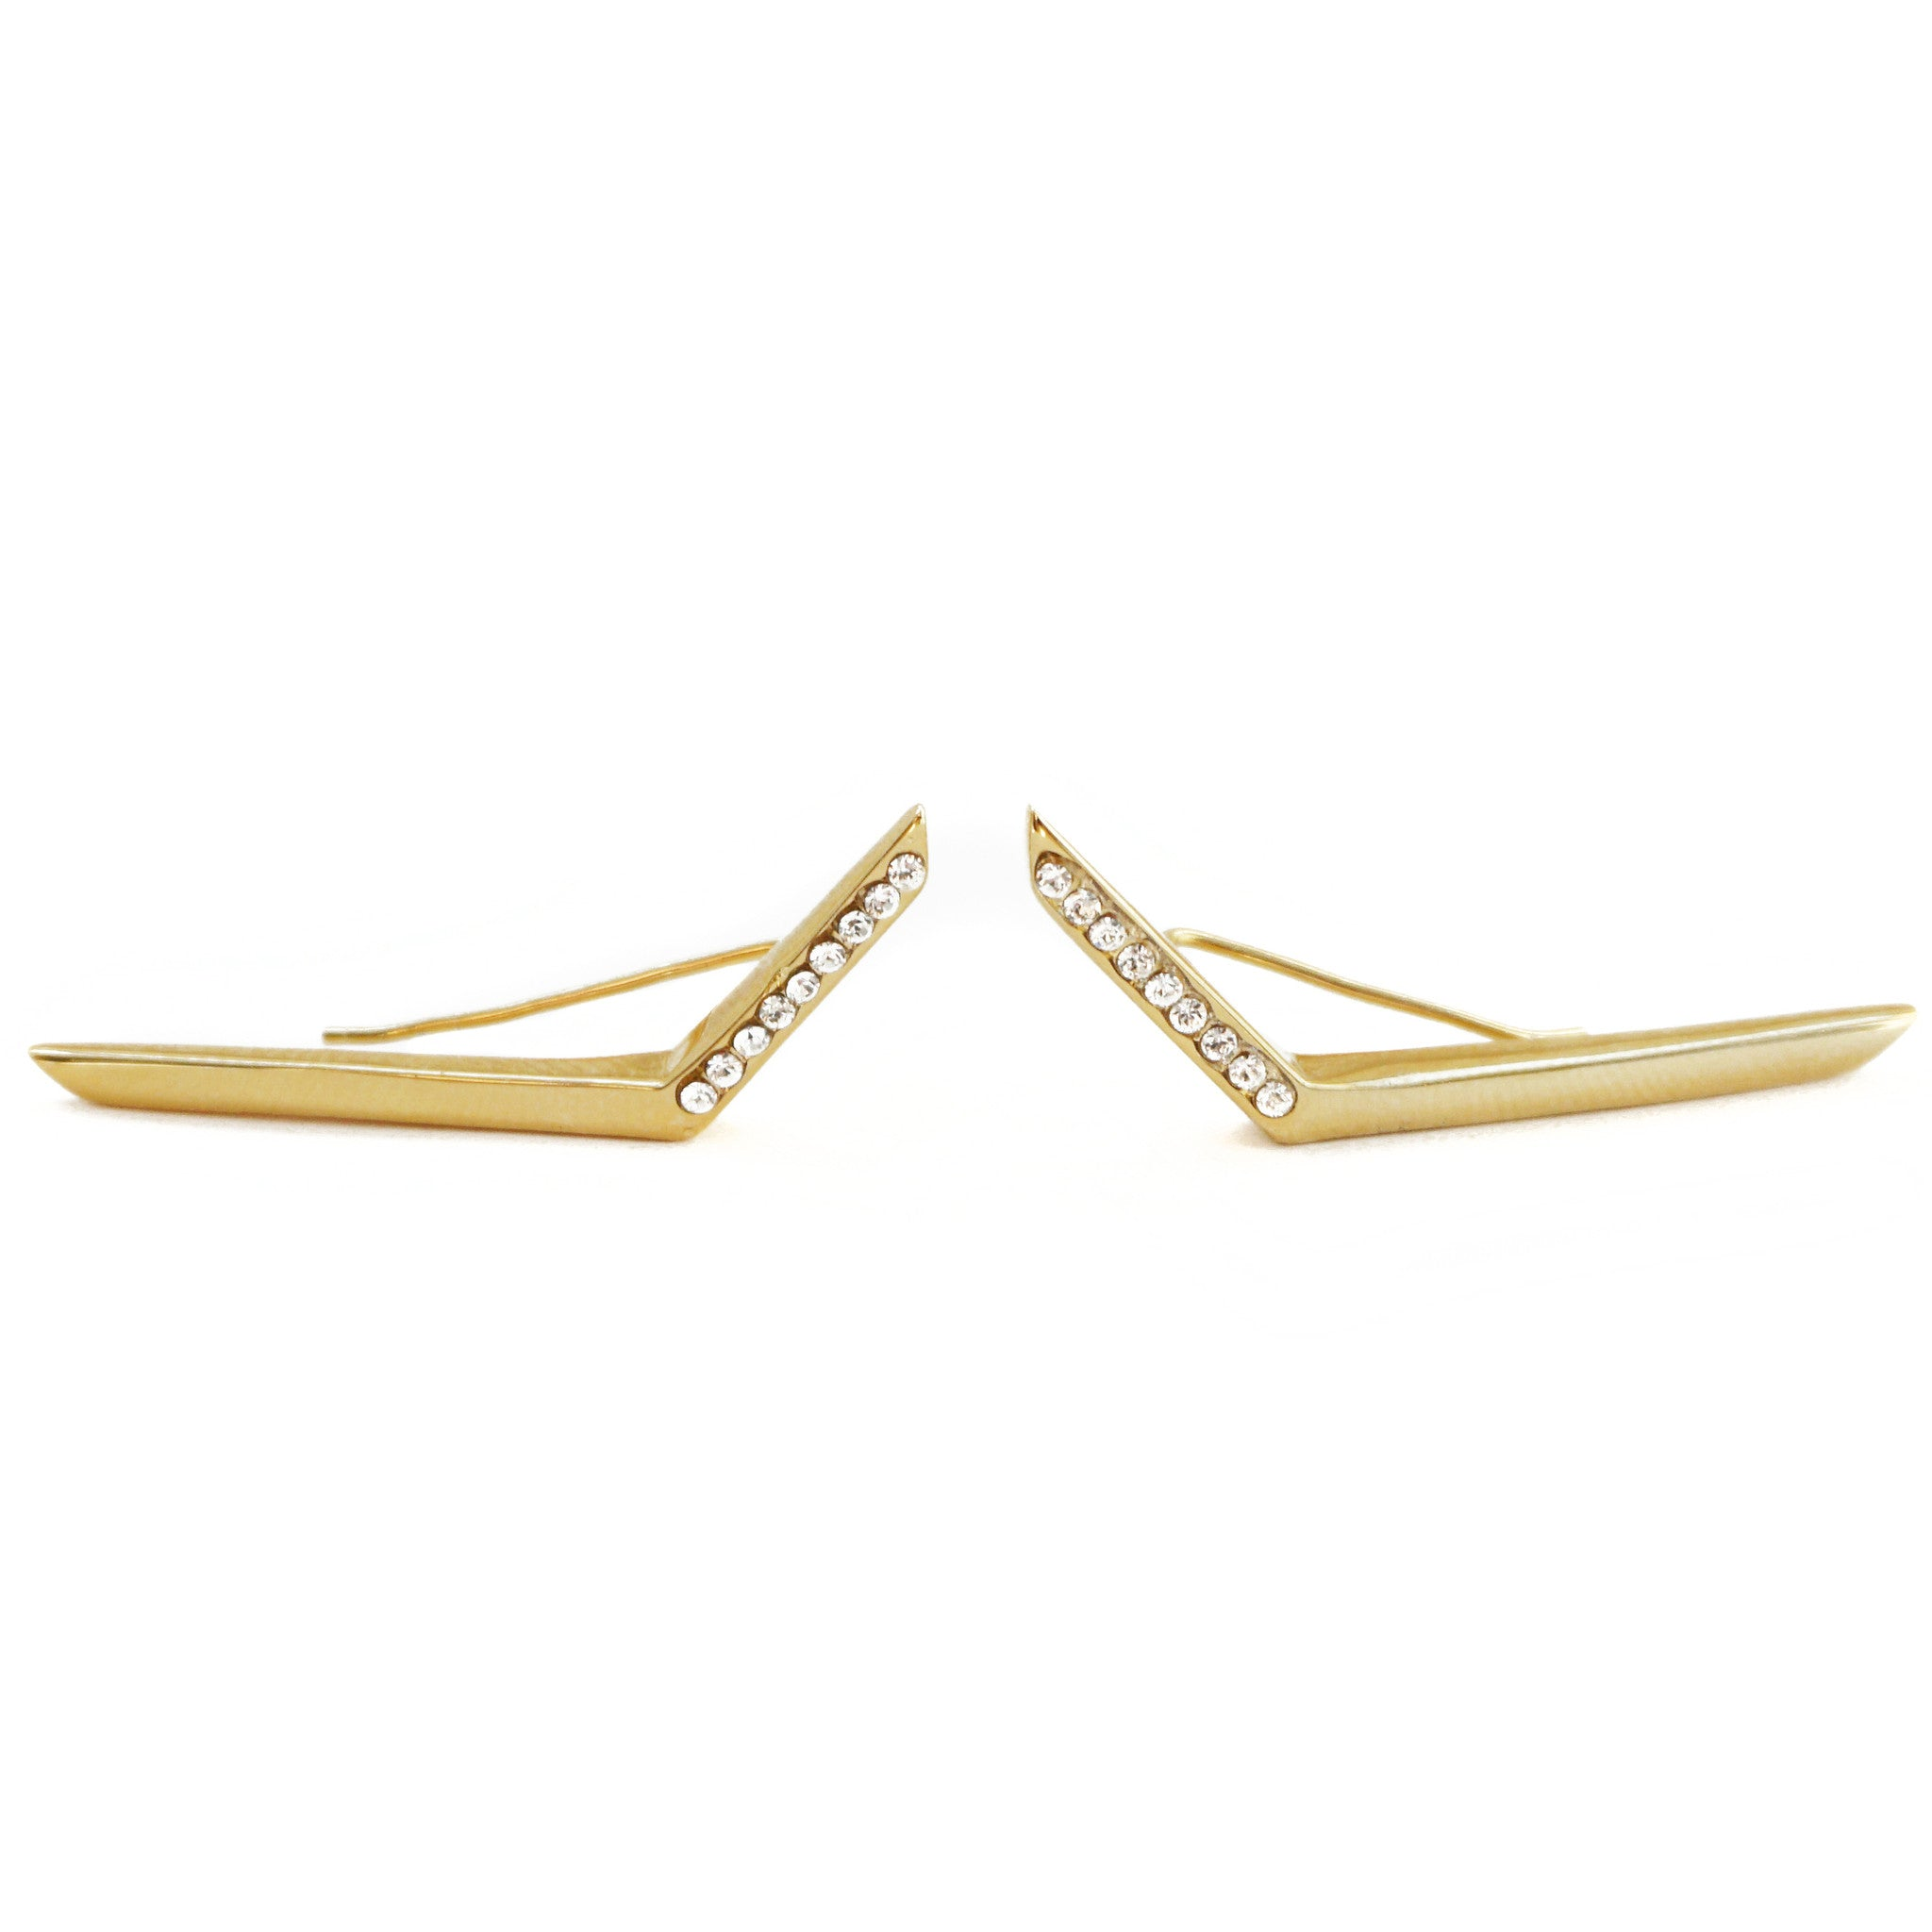 CAROLYN COLBY - GOLD LIGHTNING PAVE EAR CRAWLERS